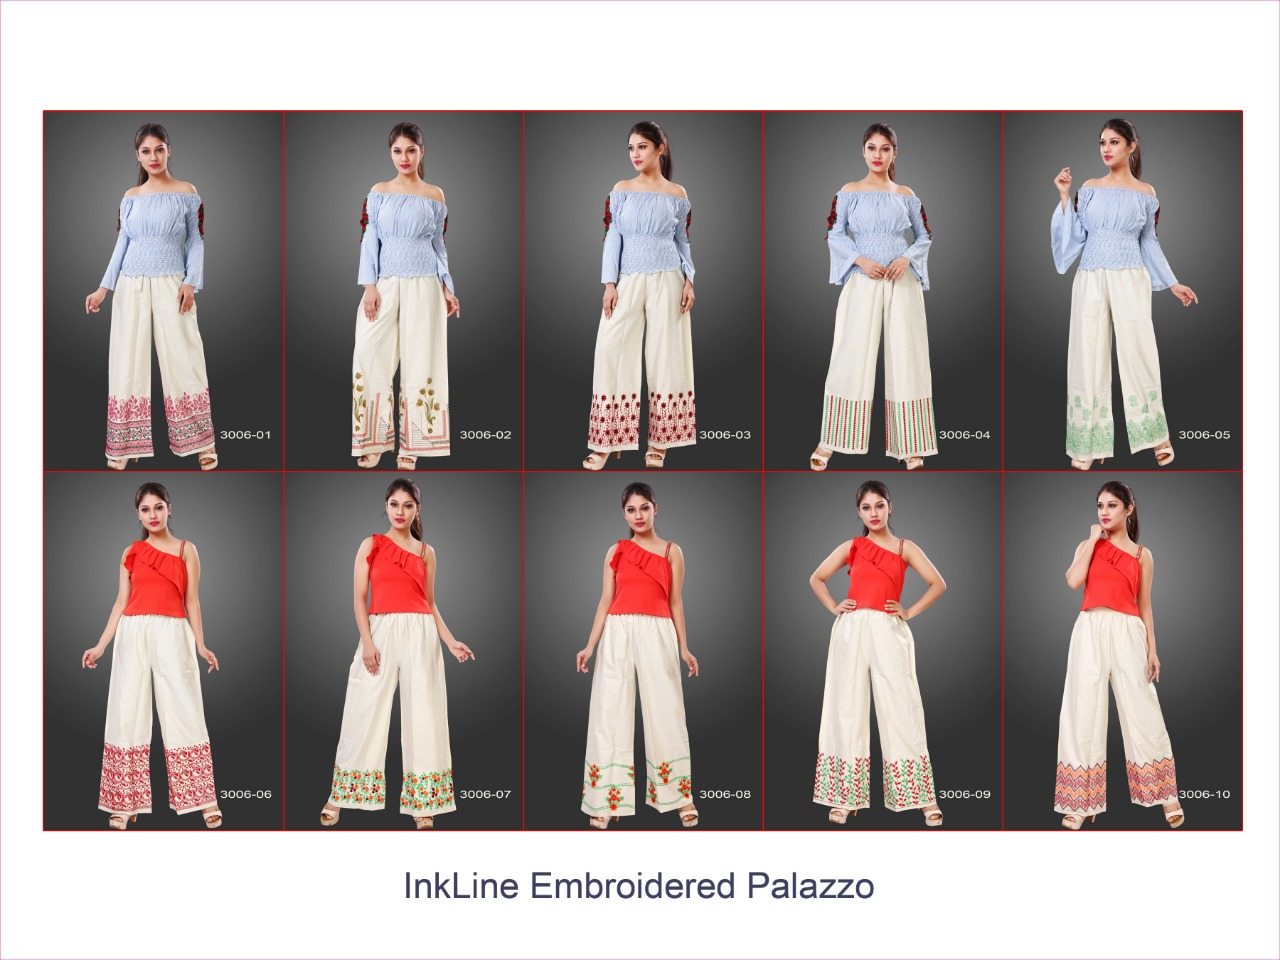 Varun Inkline Embroidered Palazzo Wholesale Catalog 10 Pcs 11 - Varun Inkline Embroidered Palazzo Vol 3 Wholesale Catalog 10 Pcs